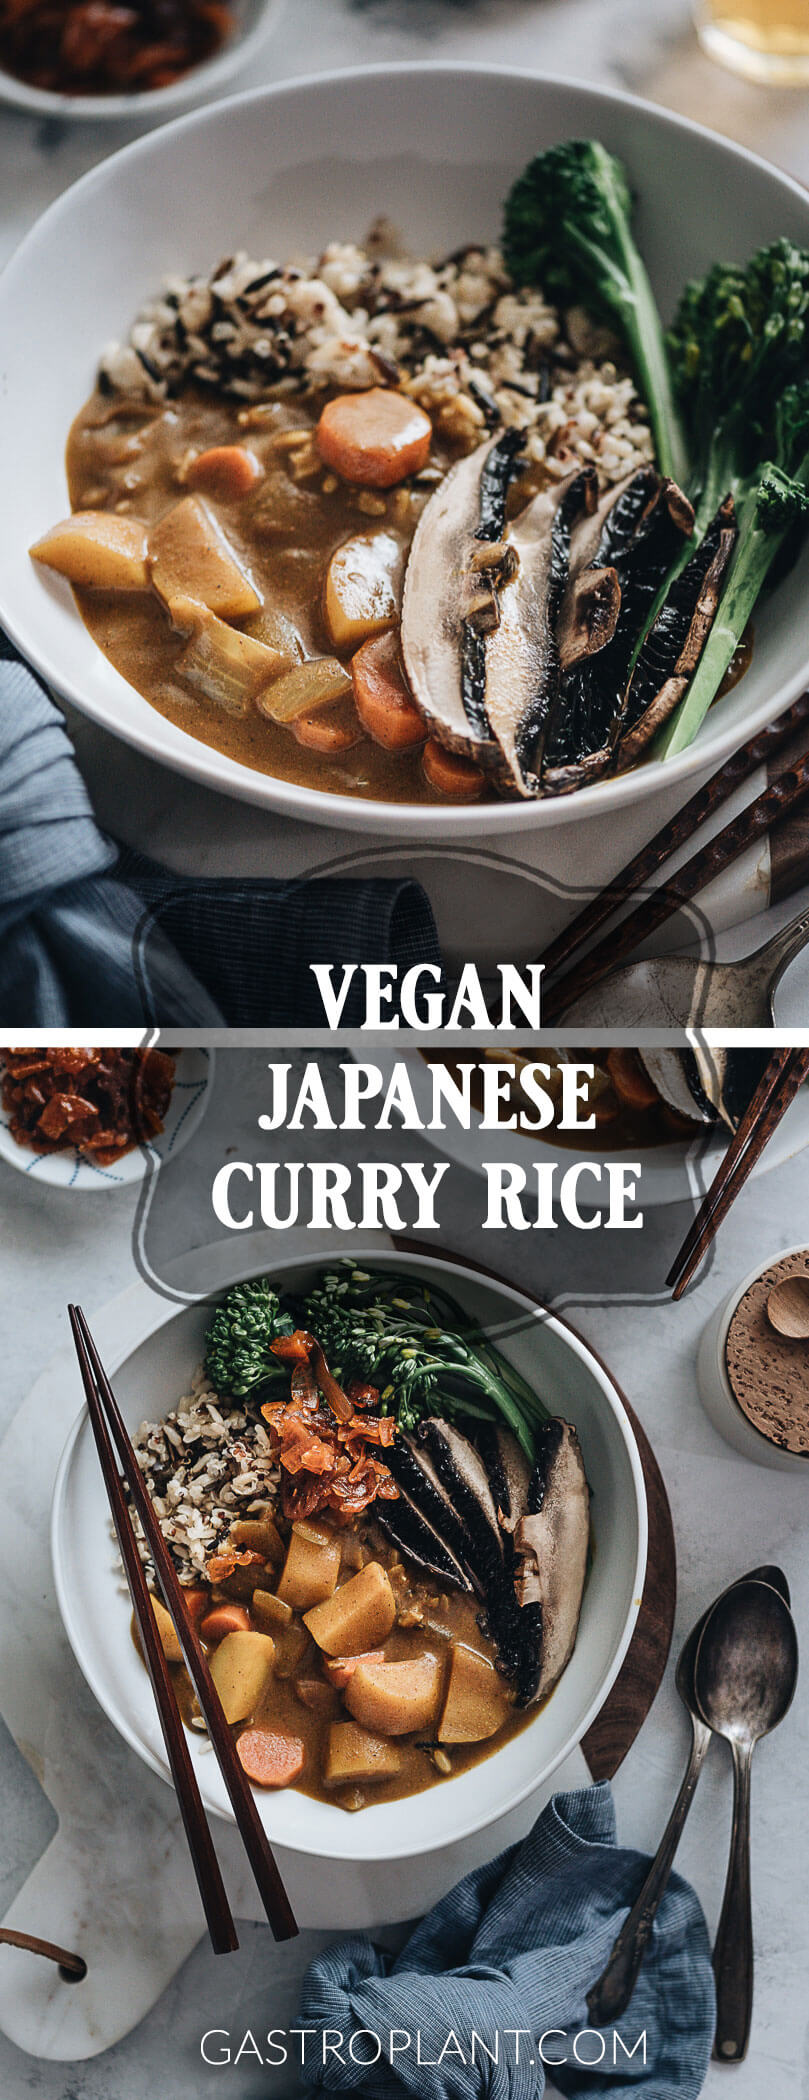 Vegan Japanese Curry Gastroplant